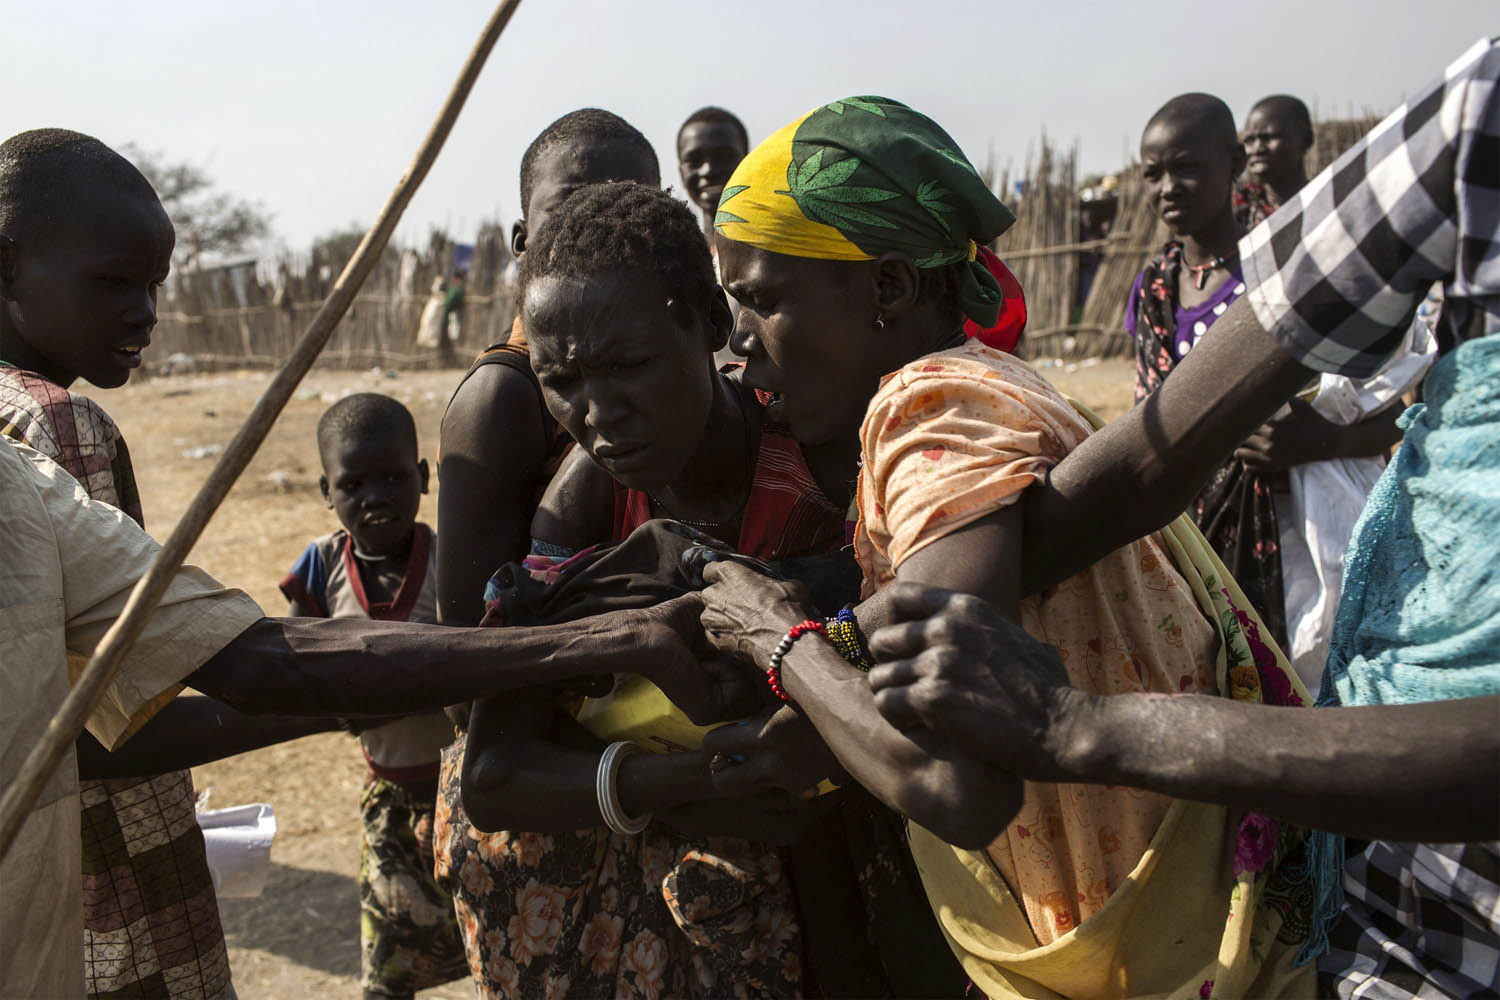 Feb. 9, 2014. South Sudanese internally displaced people (IDP) fight for food supplies, distributed by the International Committee of the Red Cross (ICRC)  at the Mingkaman temporary camp, South Sudan.